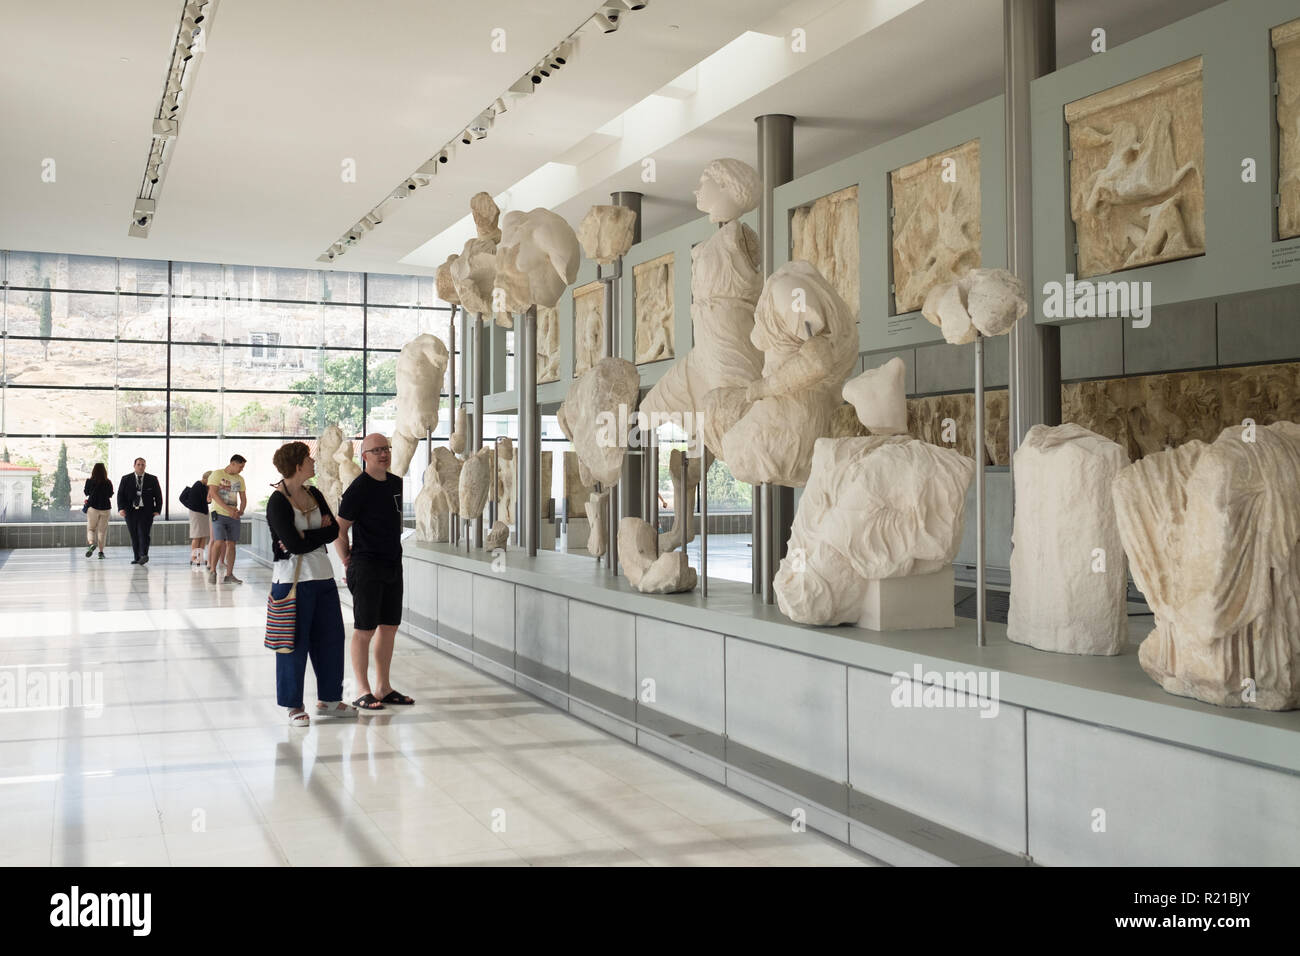 Tourists view the west pediment of the Parthenon in the Acropolis Museum in Athens, Greece - Stock Image